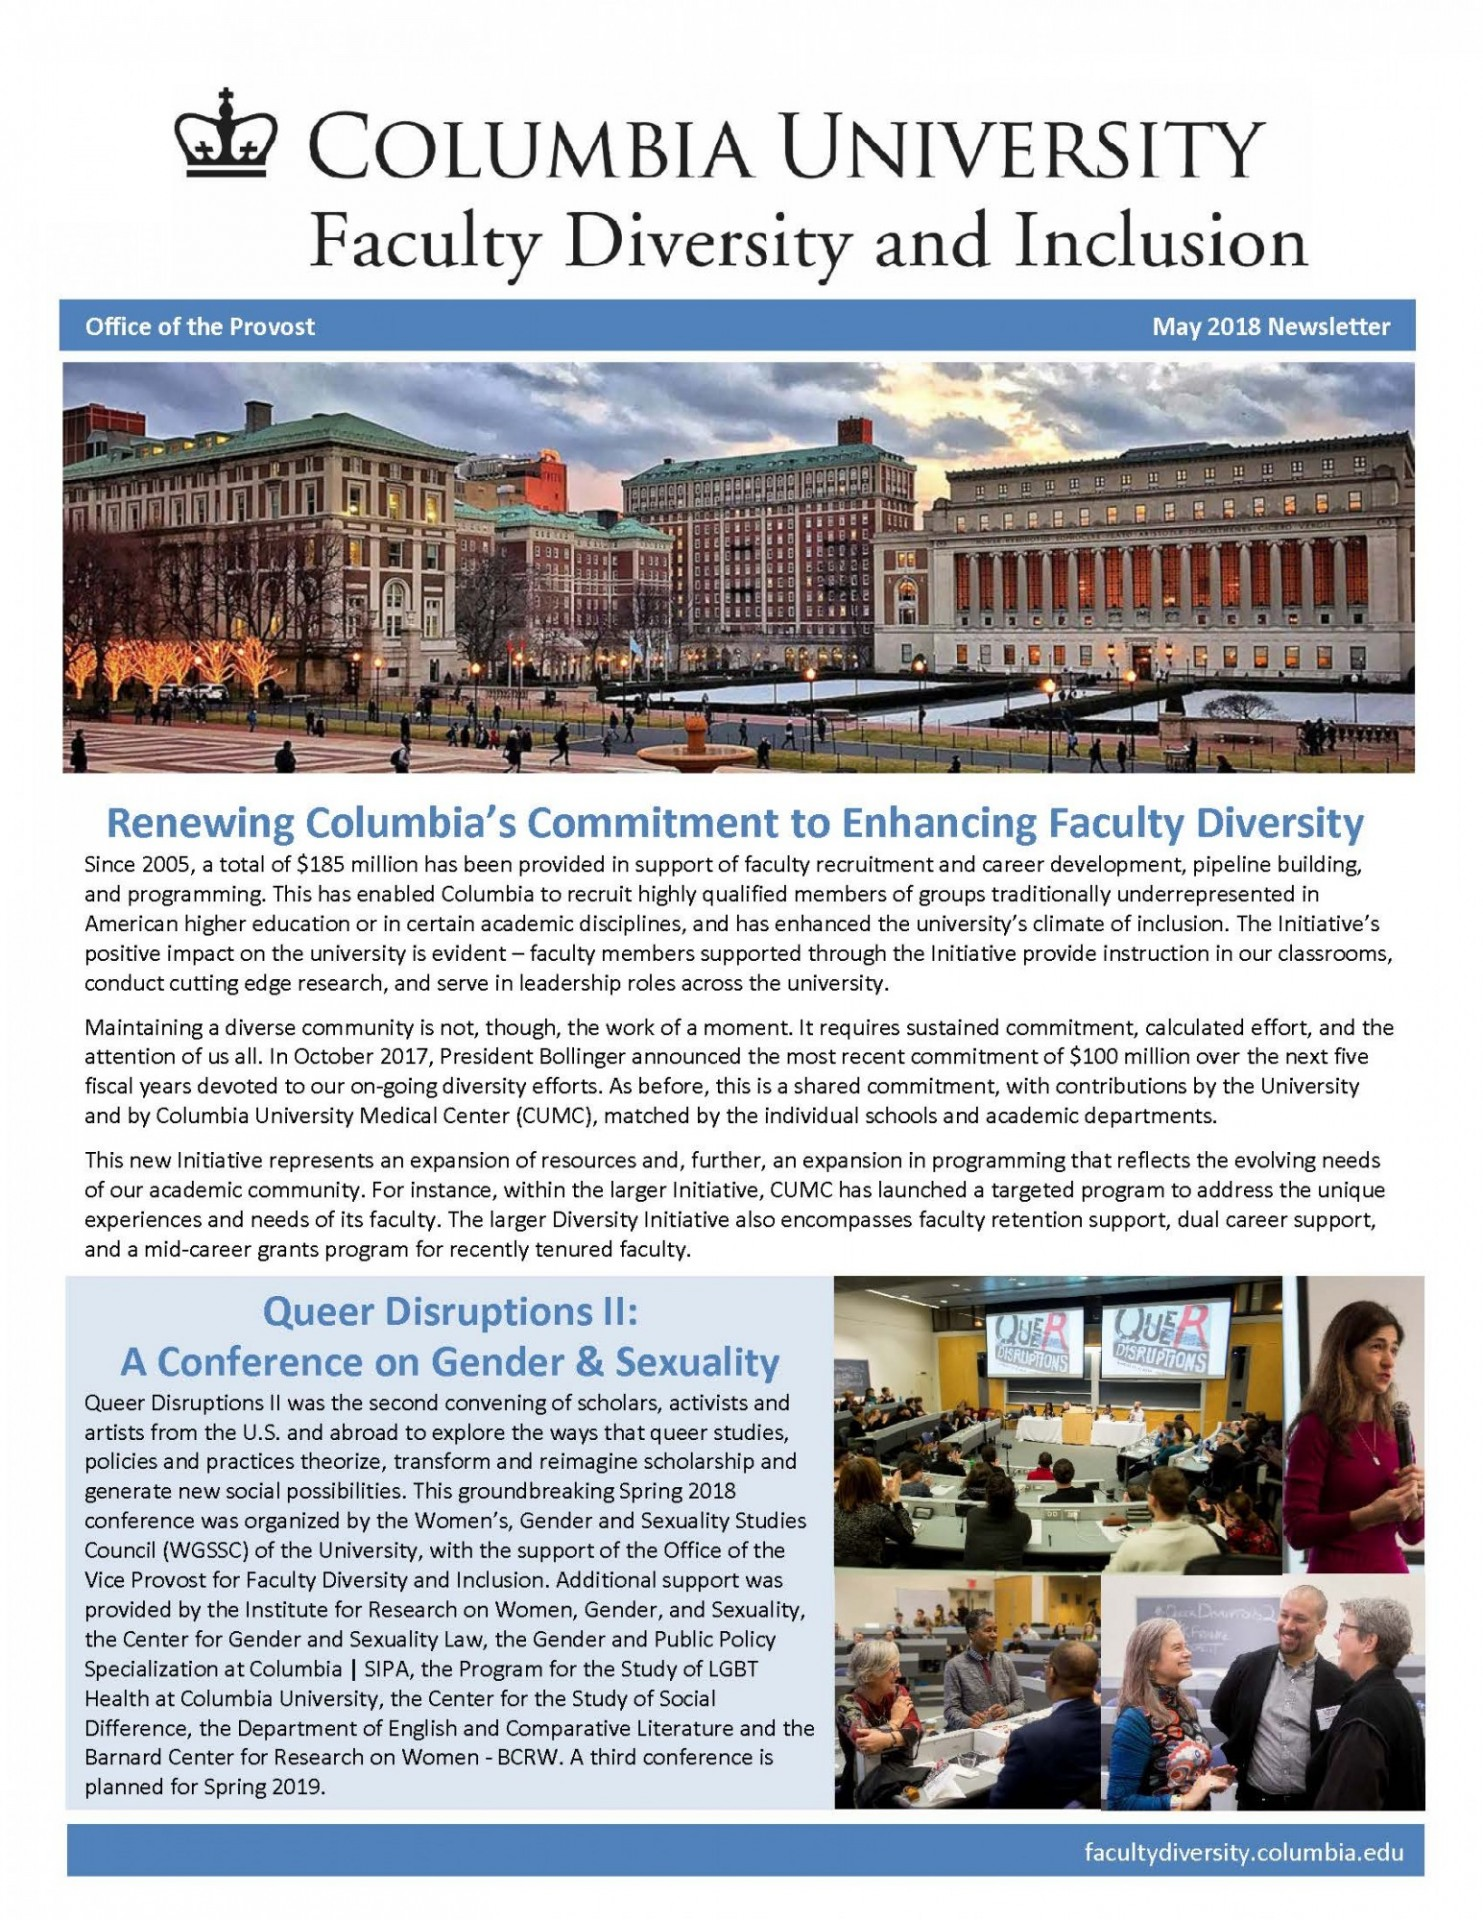 Faculty Diversity Newsletter May 2018